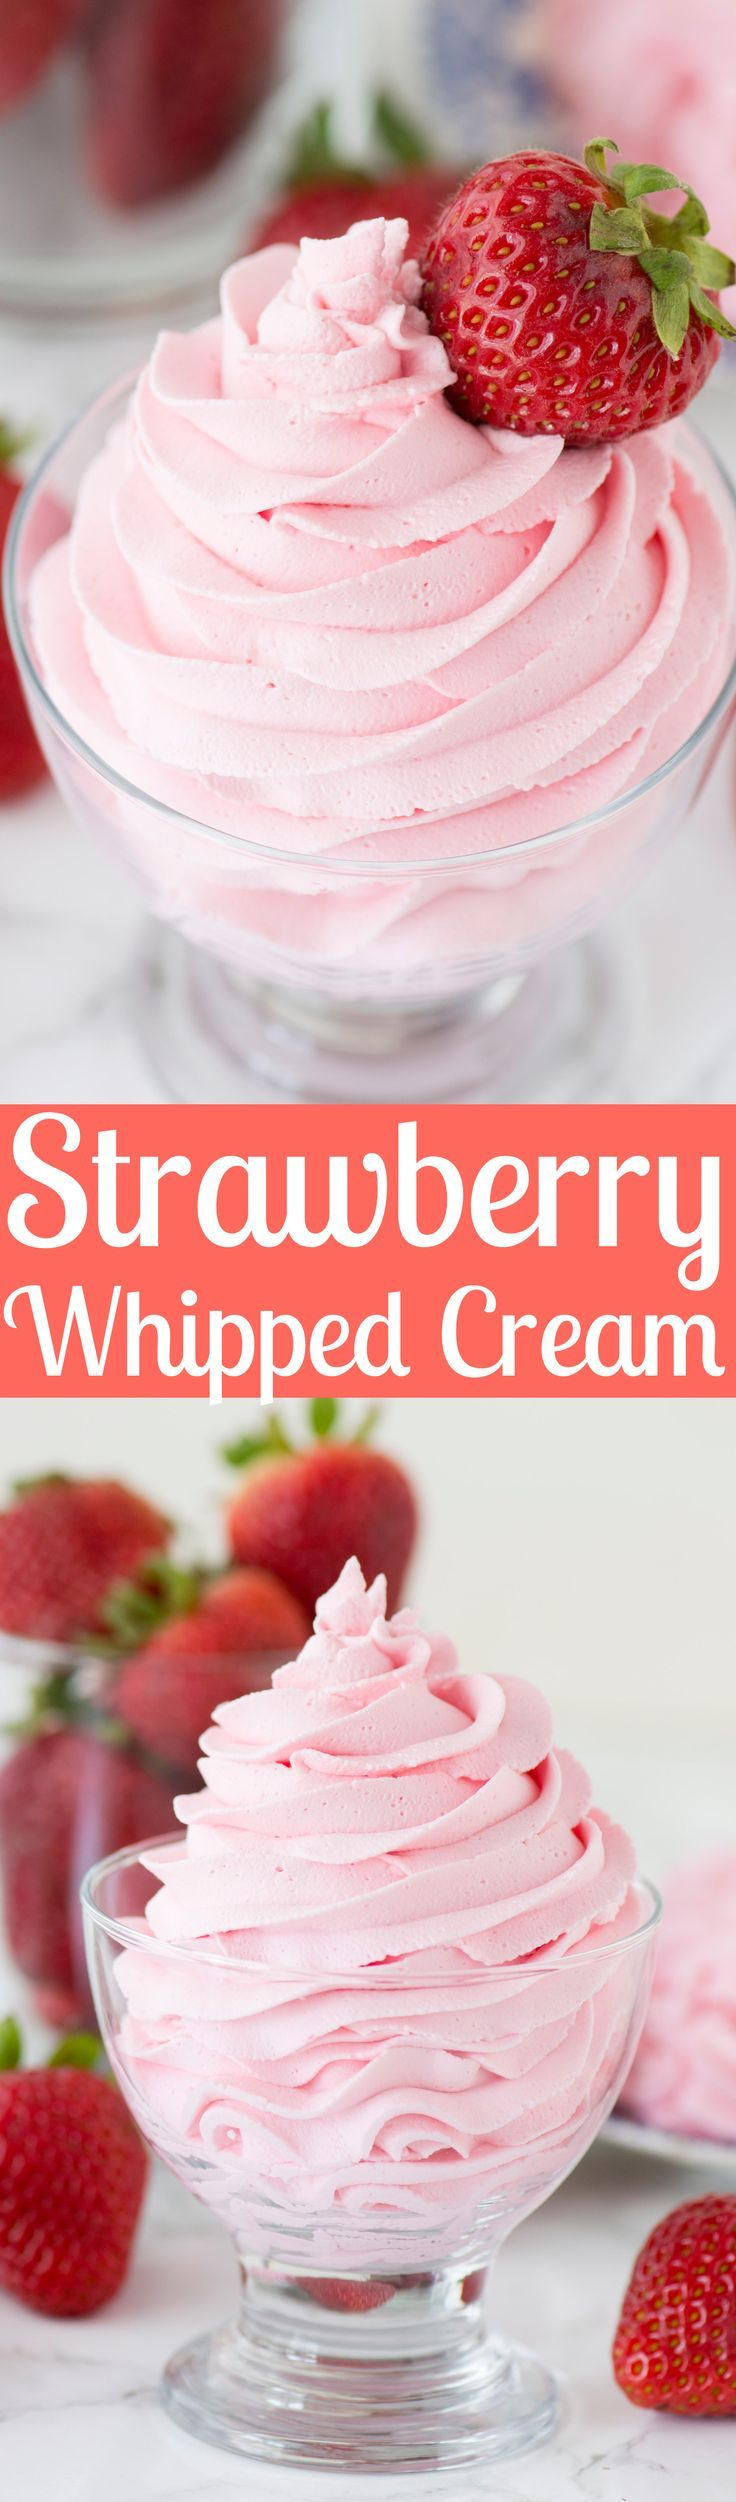 Homemade strawberry whipped cream using only 3 ingredients!